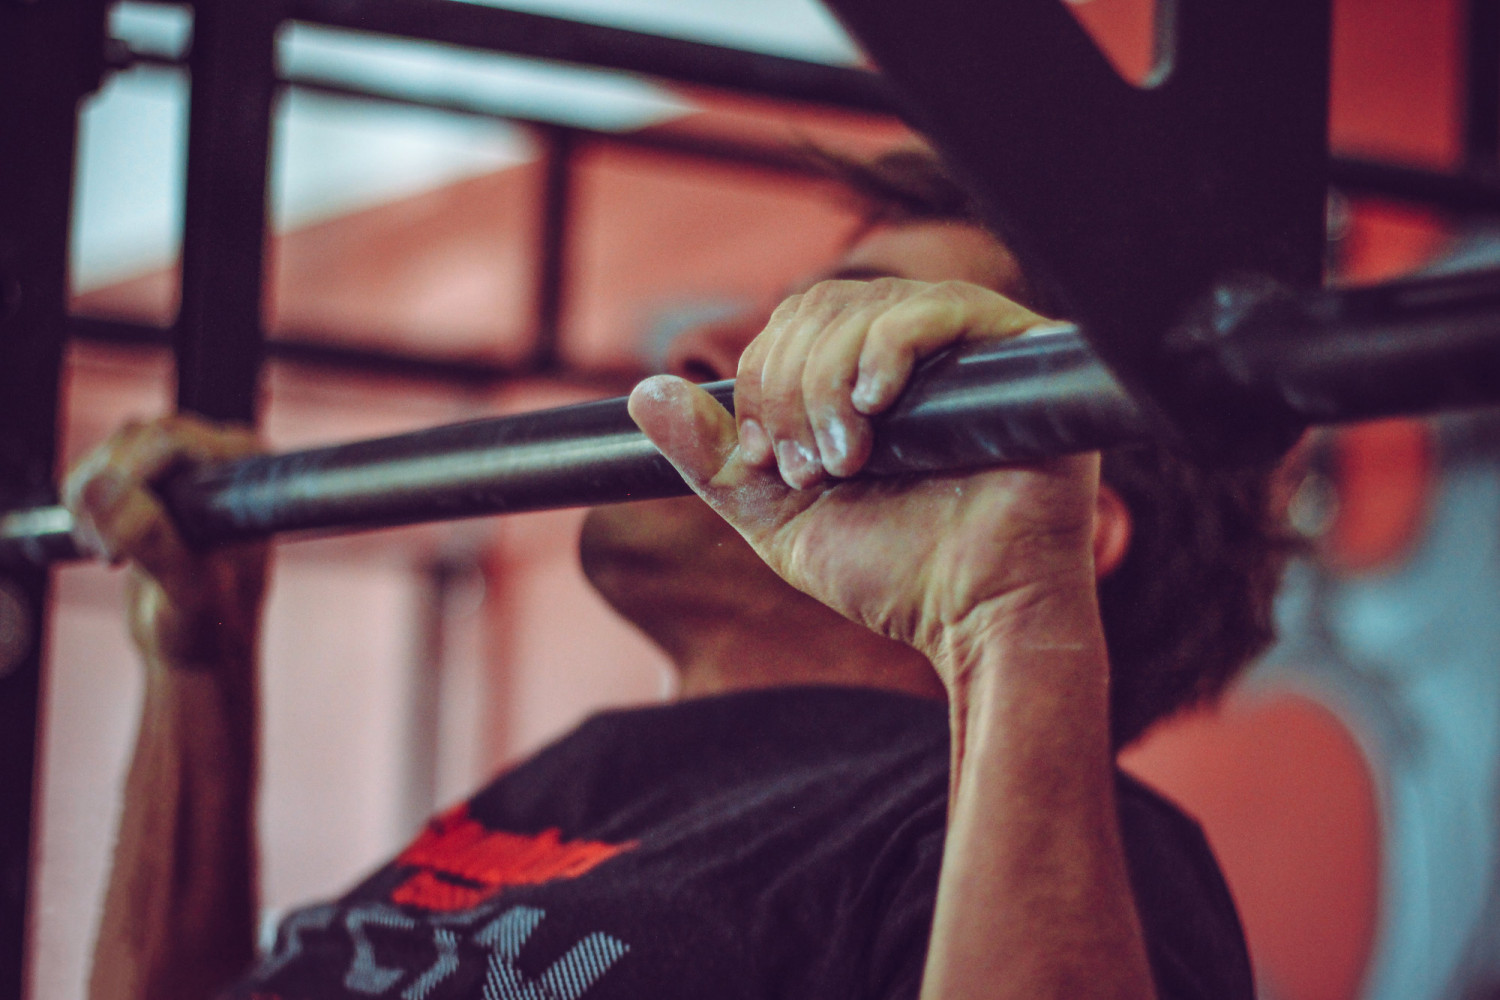 Read Full Article on Barbell Incline Bench Press